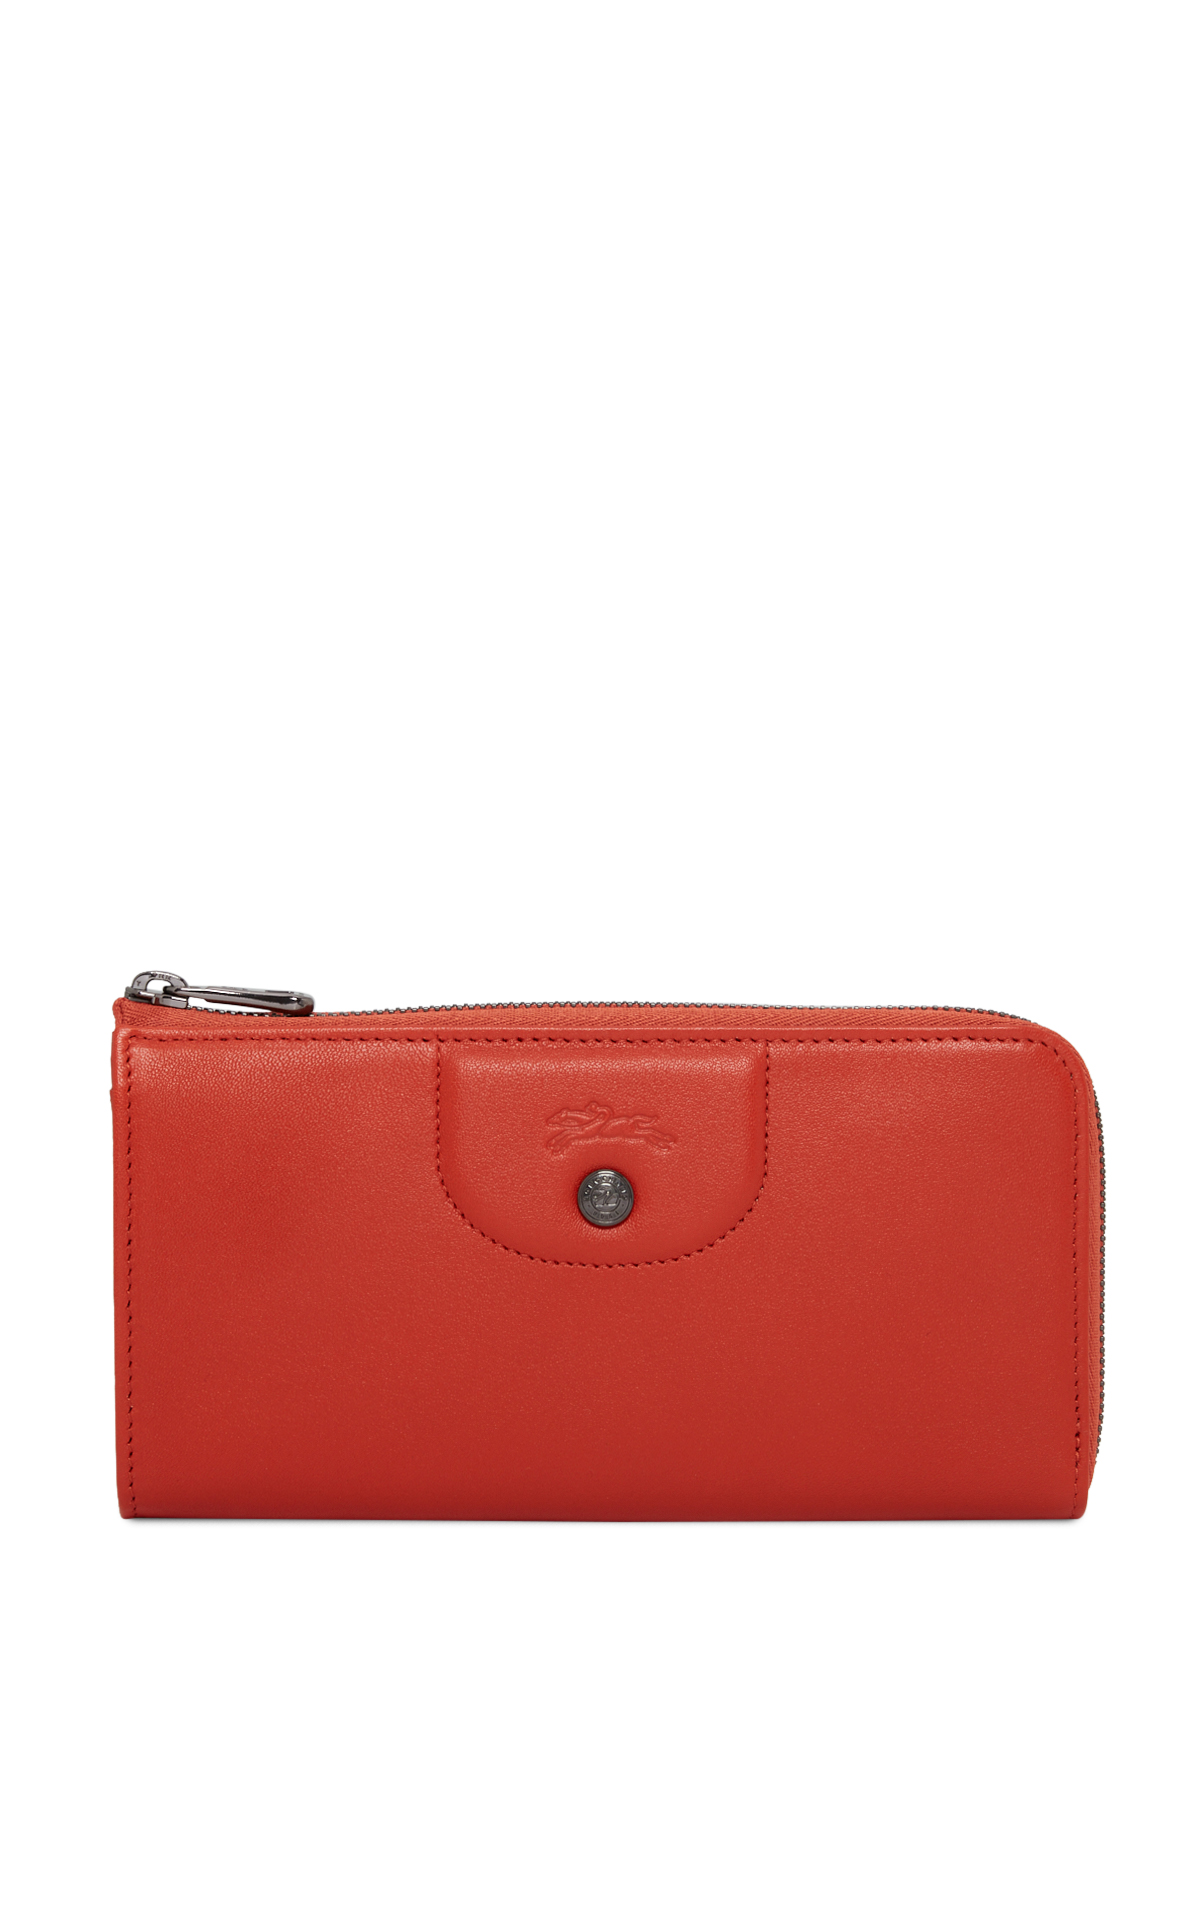 Longchamp Portefeuille long rouille*